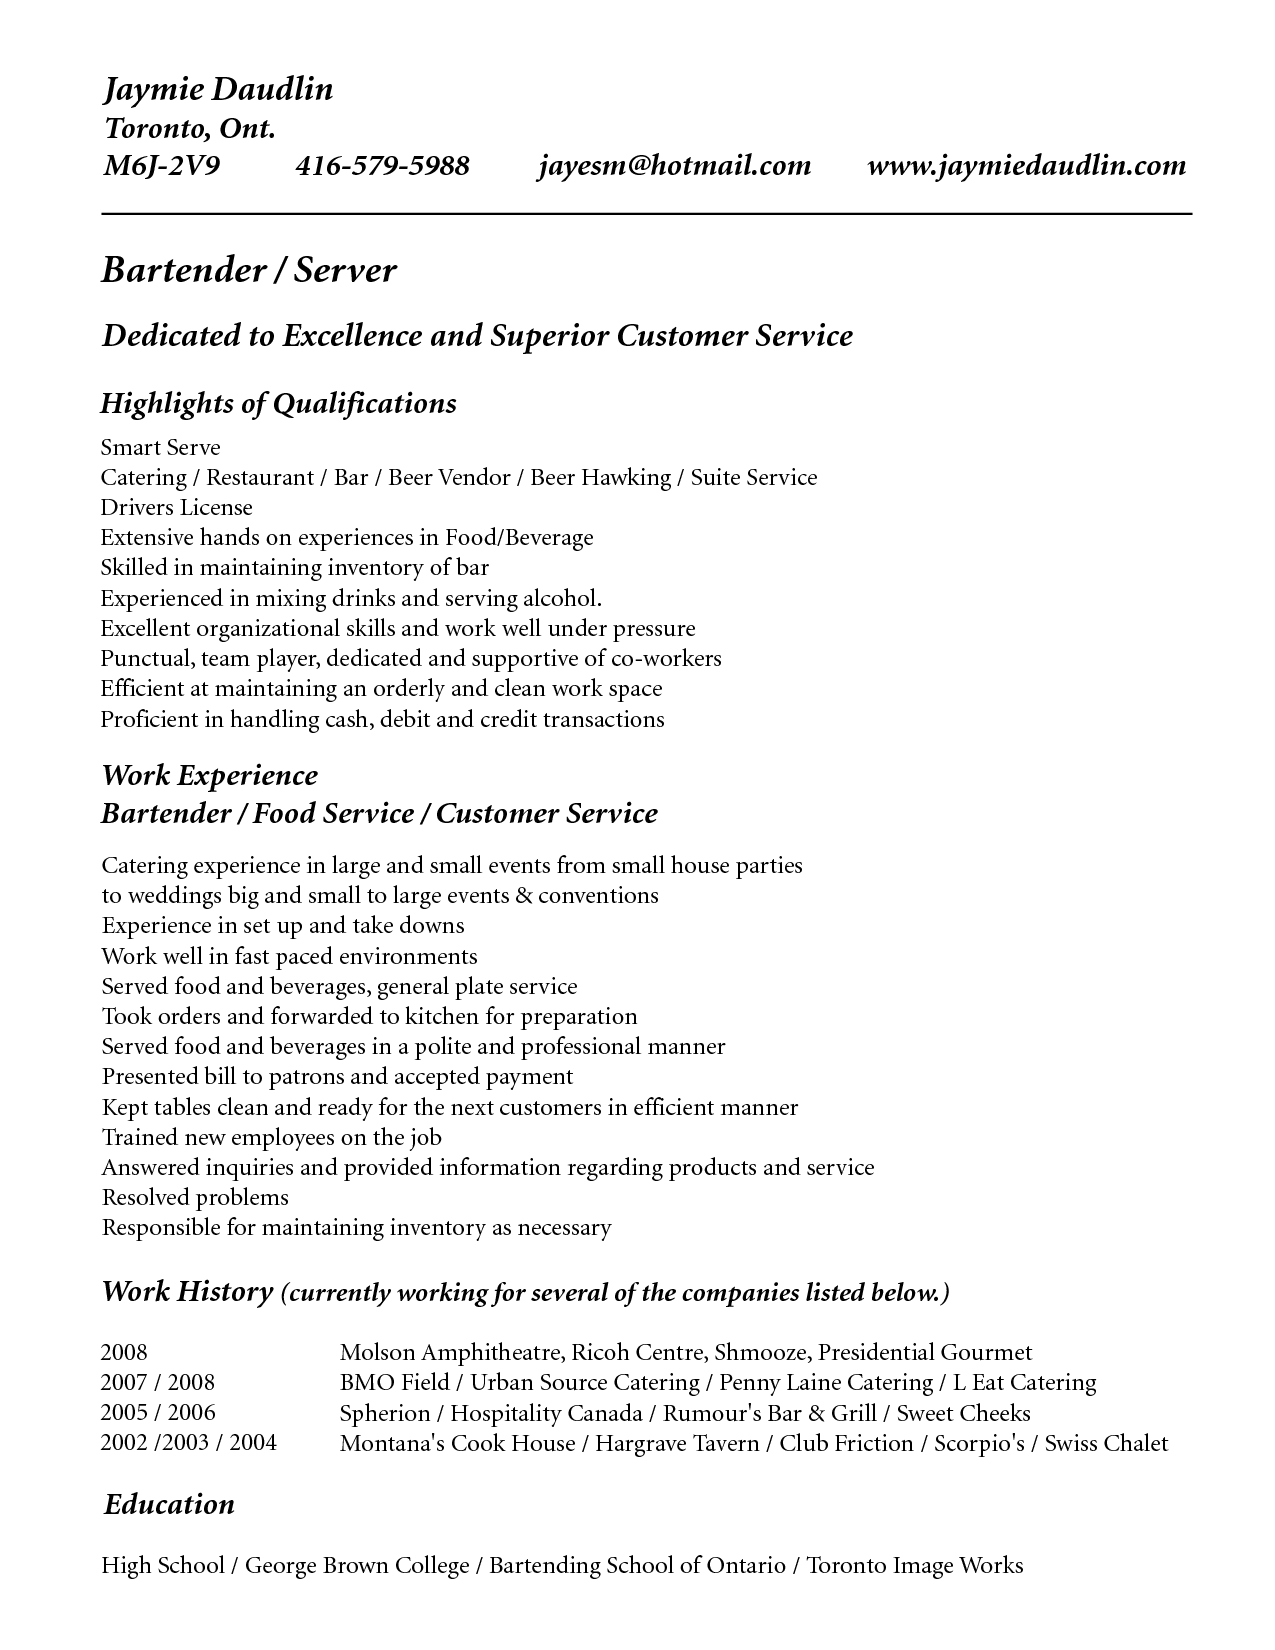 No Experience Resume Template Resume Template For Bartender No Experience  Httpwww